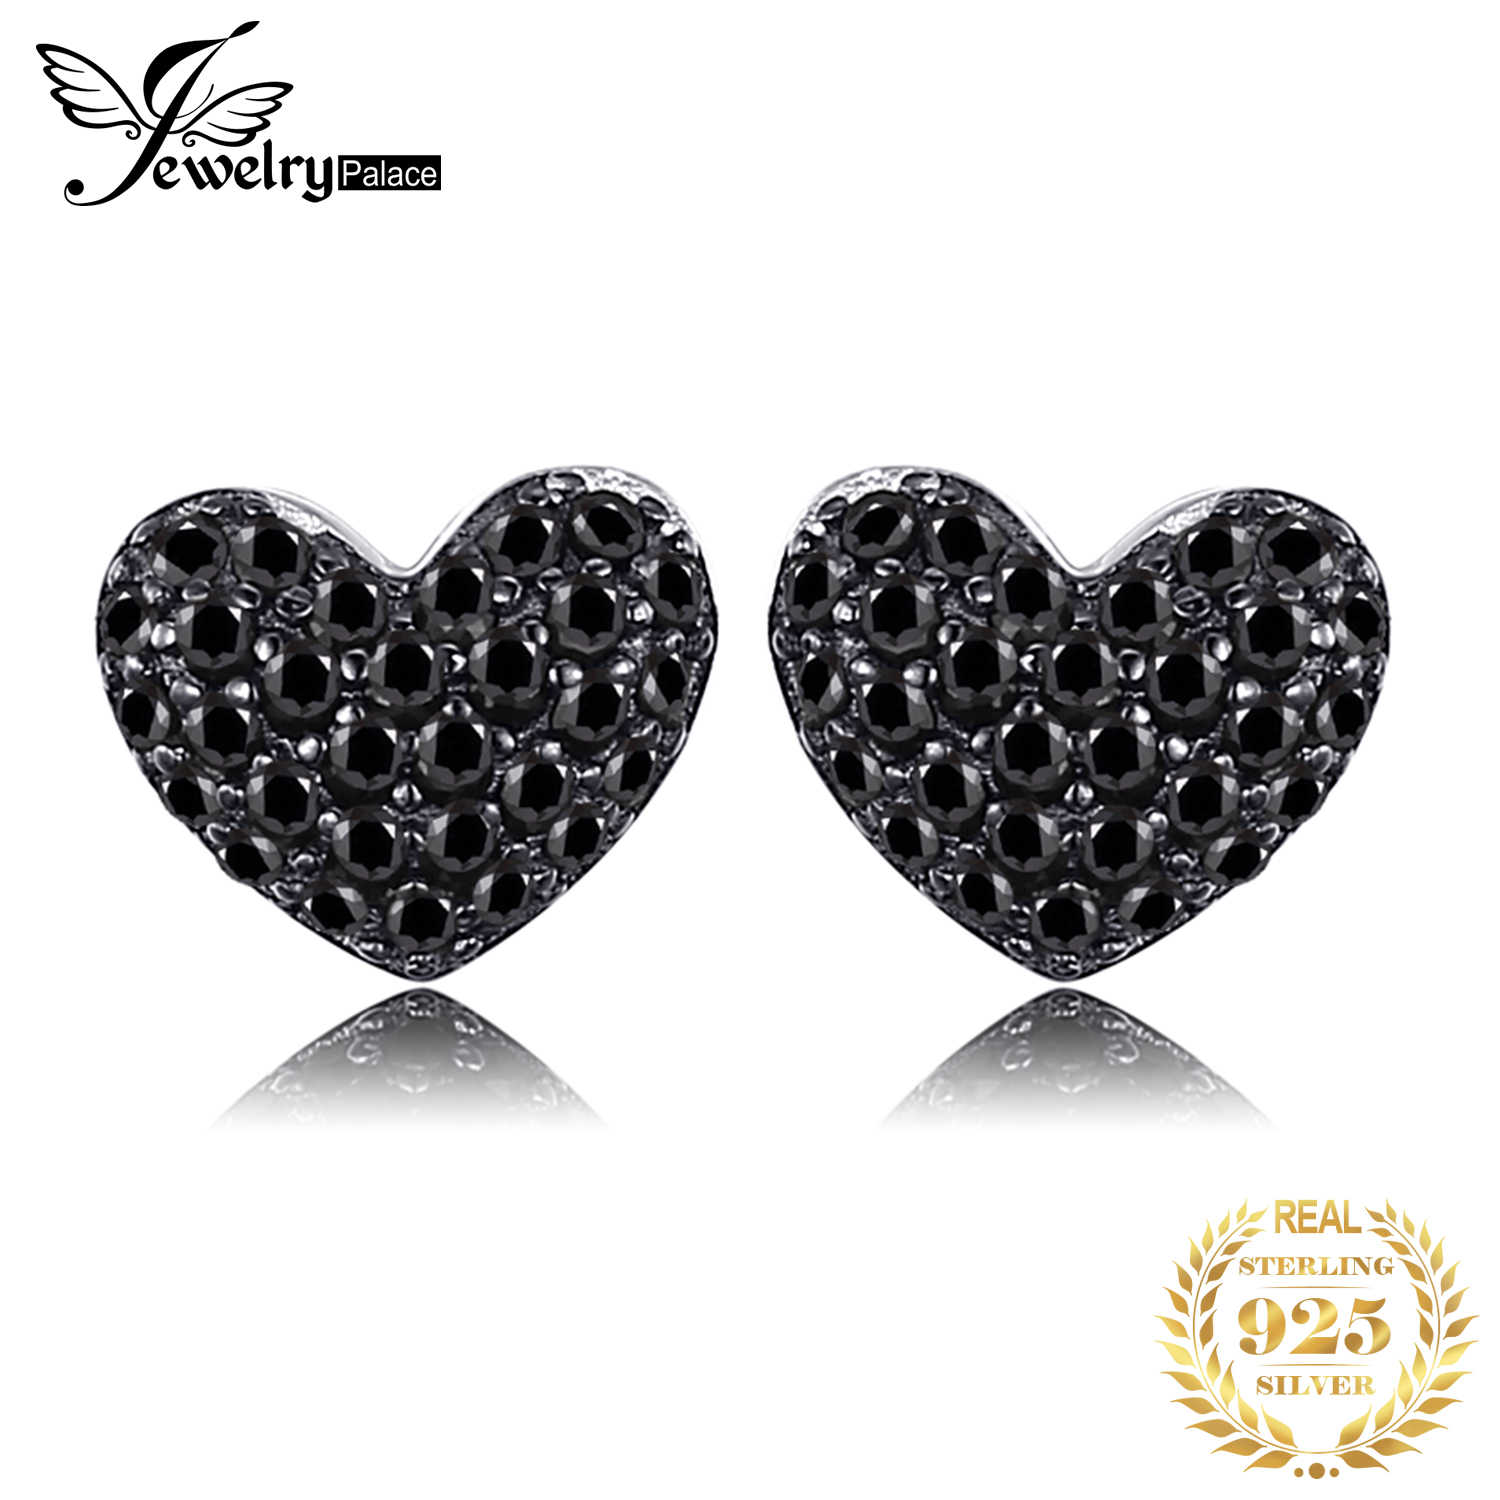 Jewelrypalace Cinta Jantung Asli Hitam Spinel Stud Earrings 925 Sterling Silver Anting-Anting Wanita Korea Anting-Anting Fashion Perhiasan